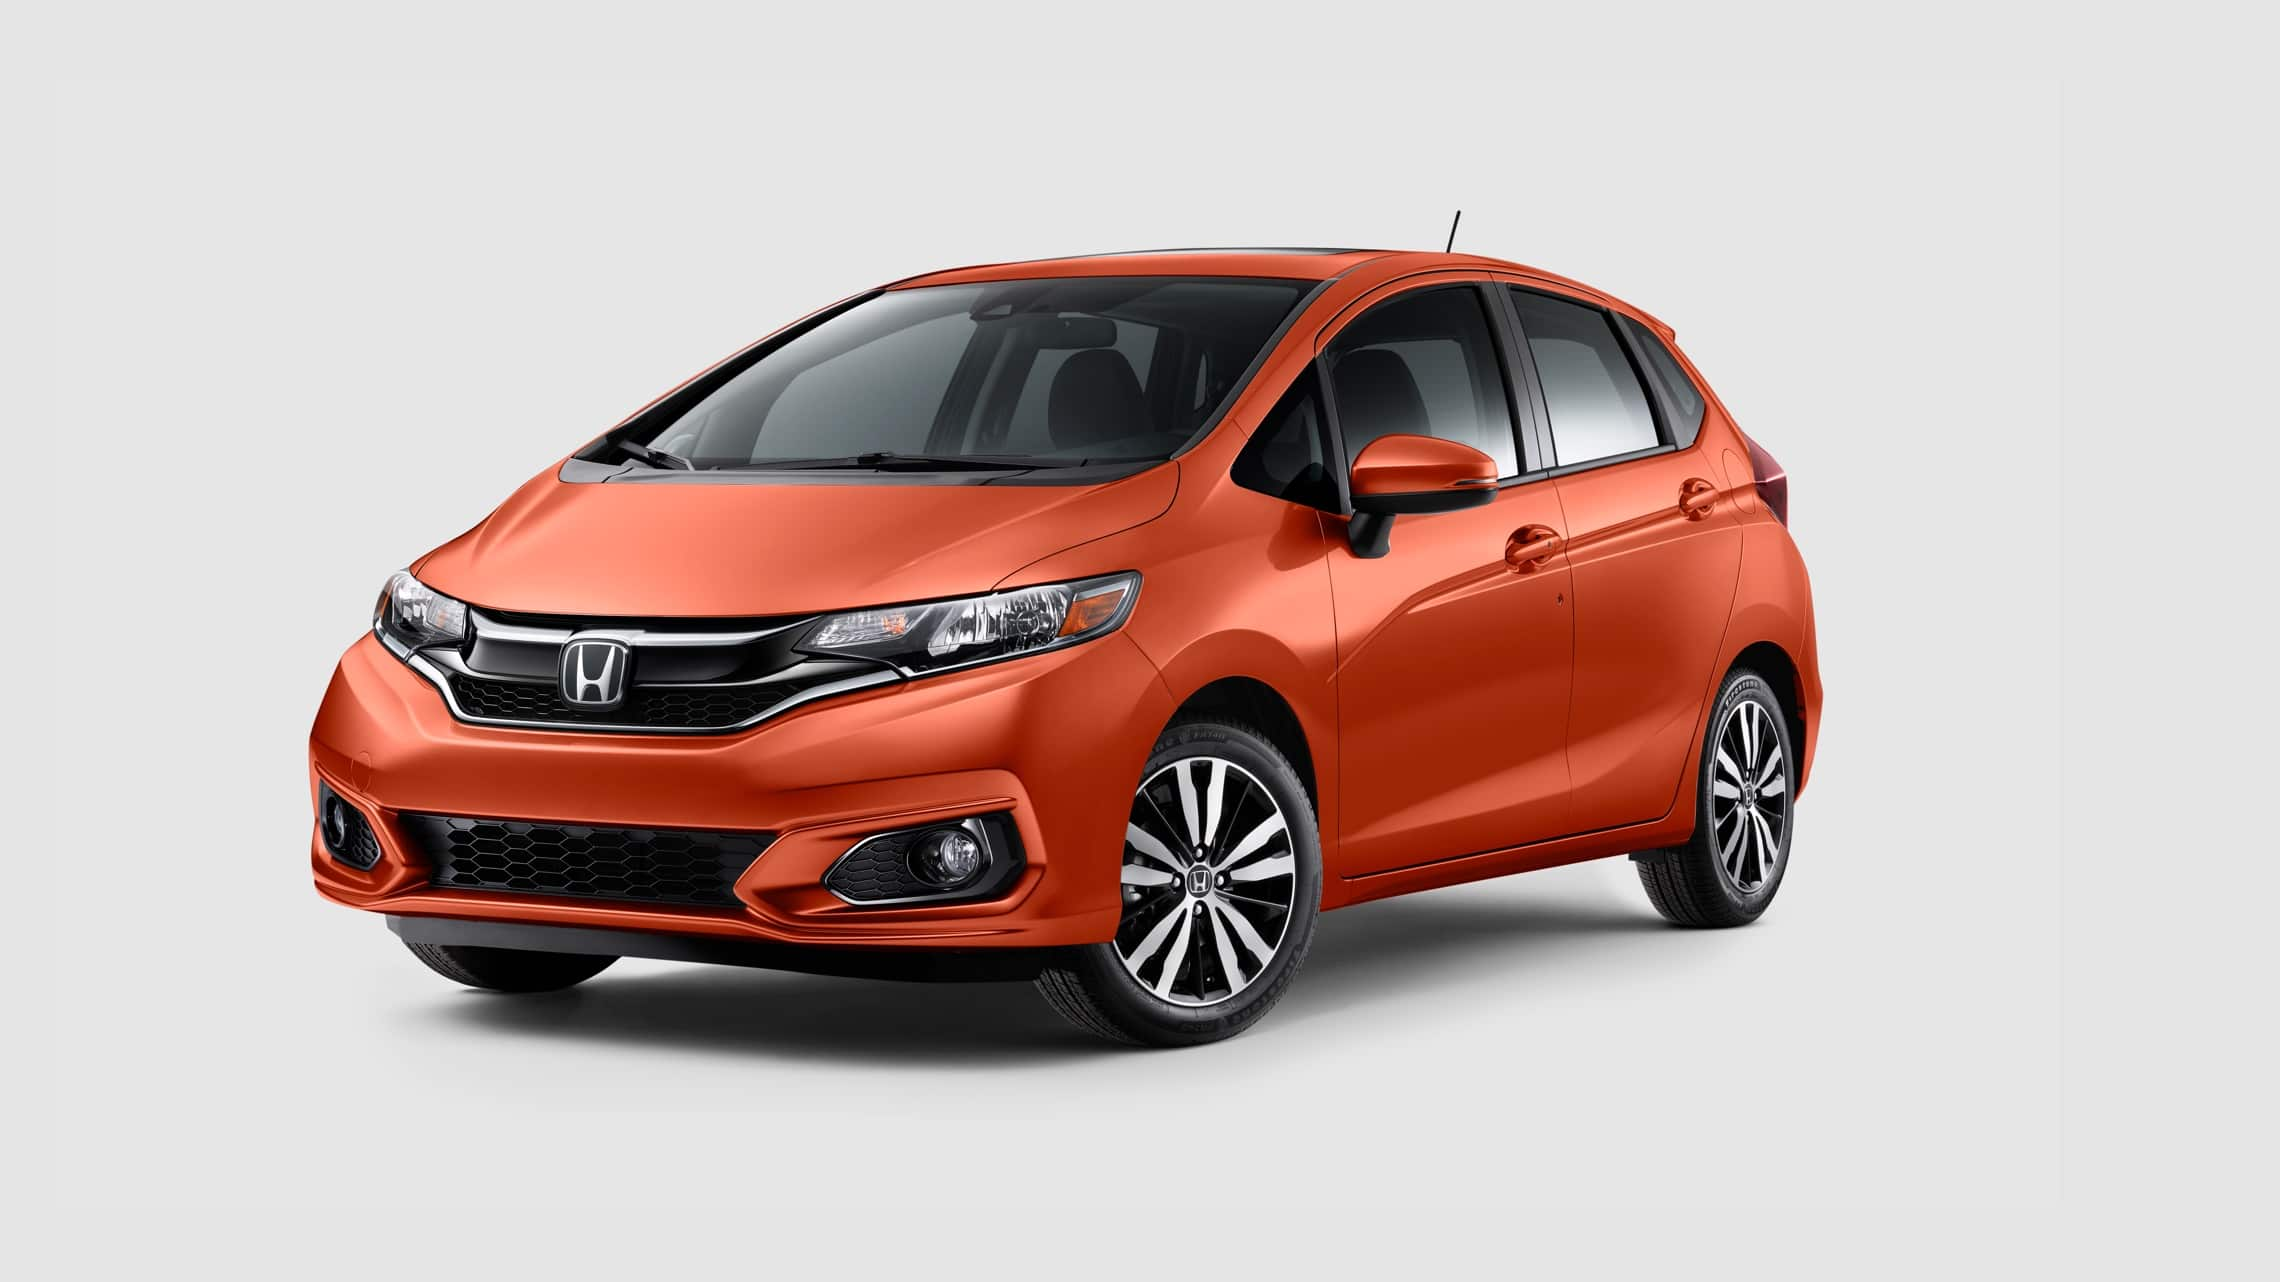 Vista frontal desde el lado del conductor del Honda Fit EX-L 2020 en Orange Fury.